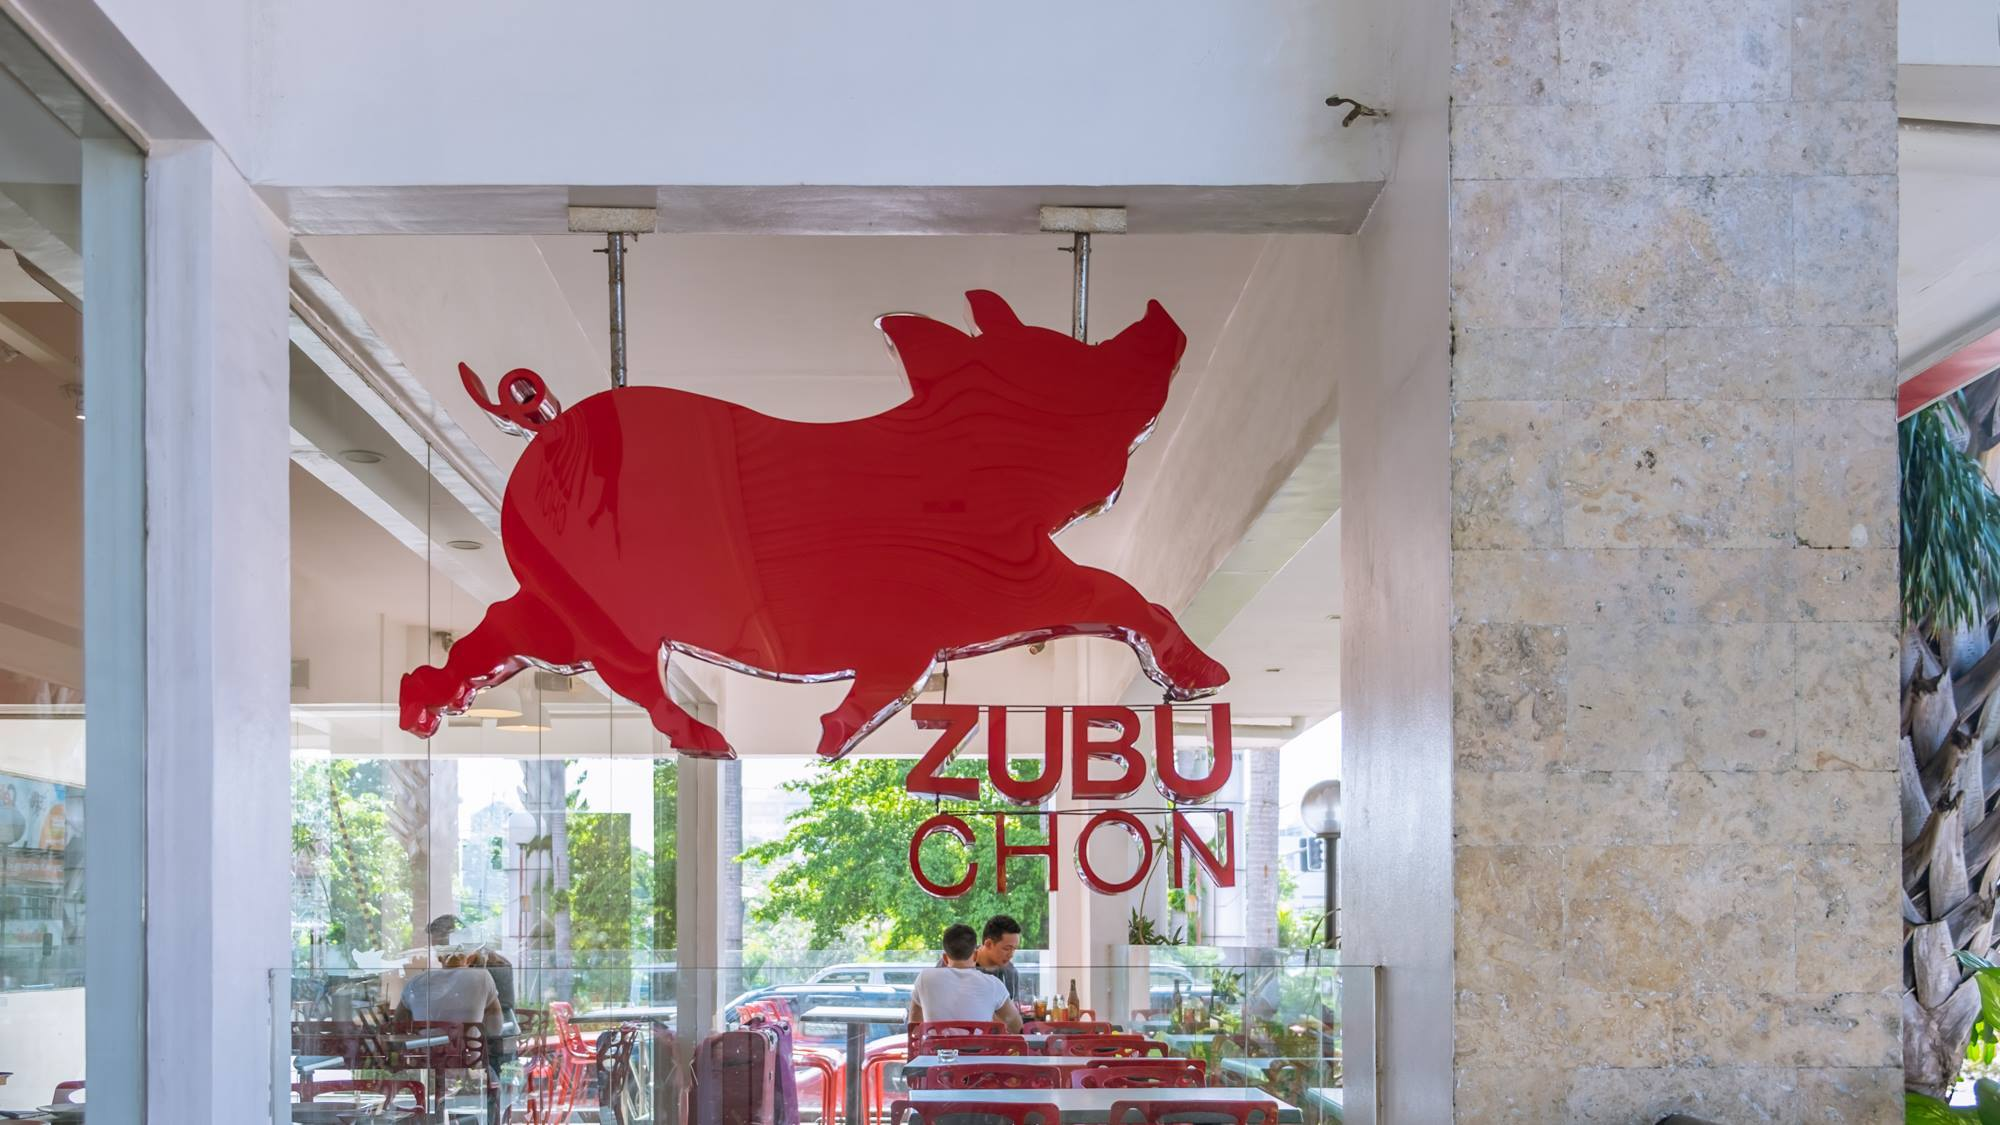 ZUBU CHON - The Making of a Foodie or An Ode to Filipino Food